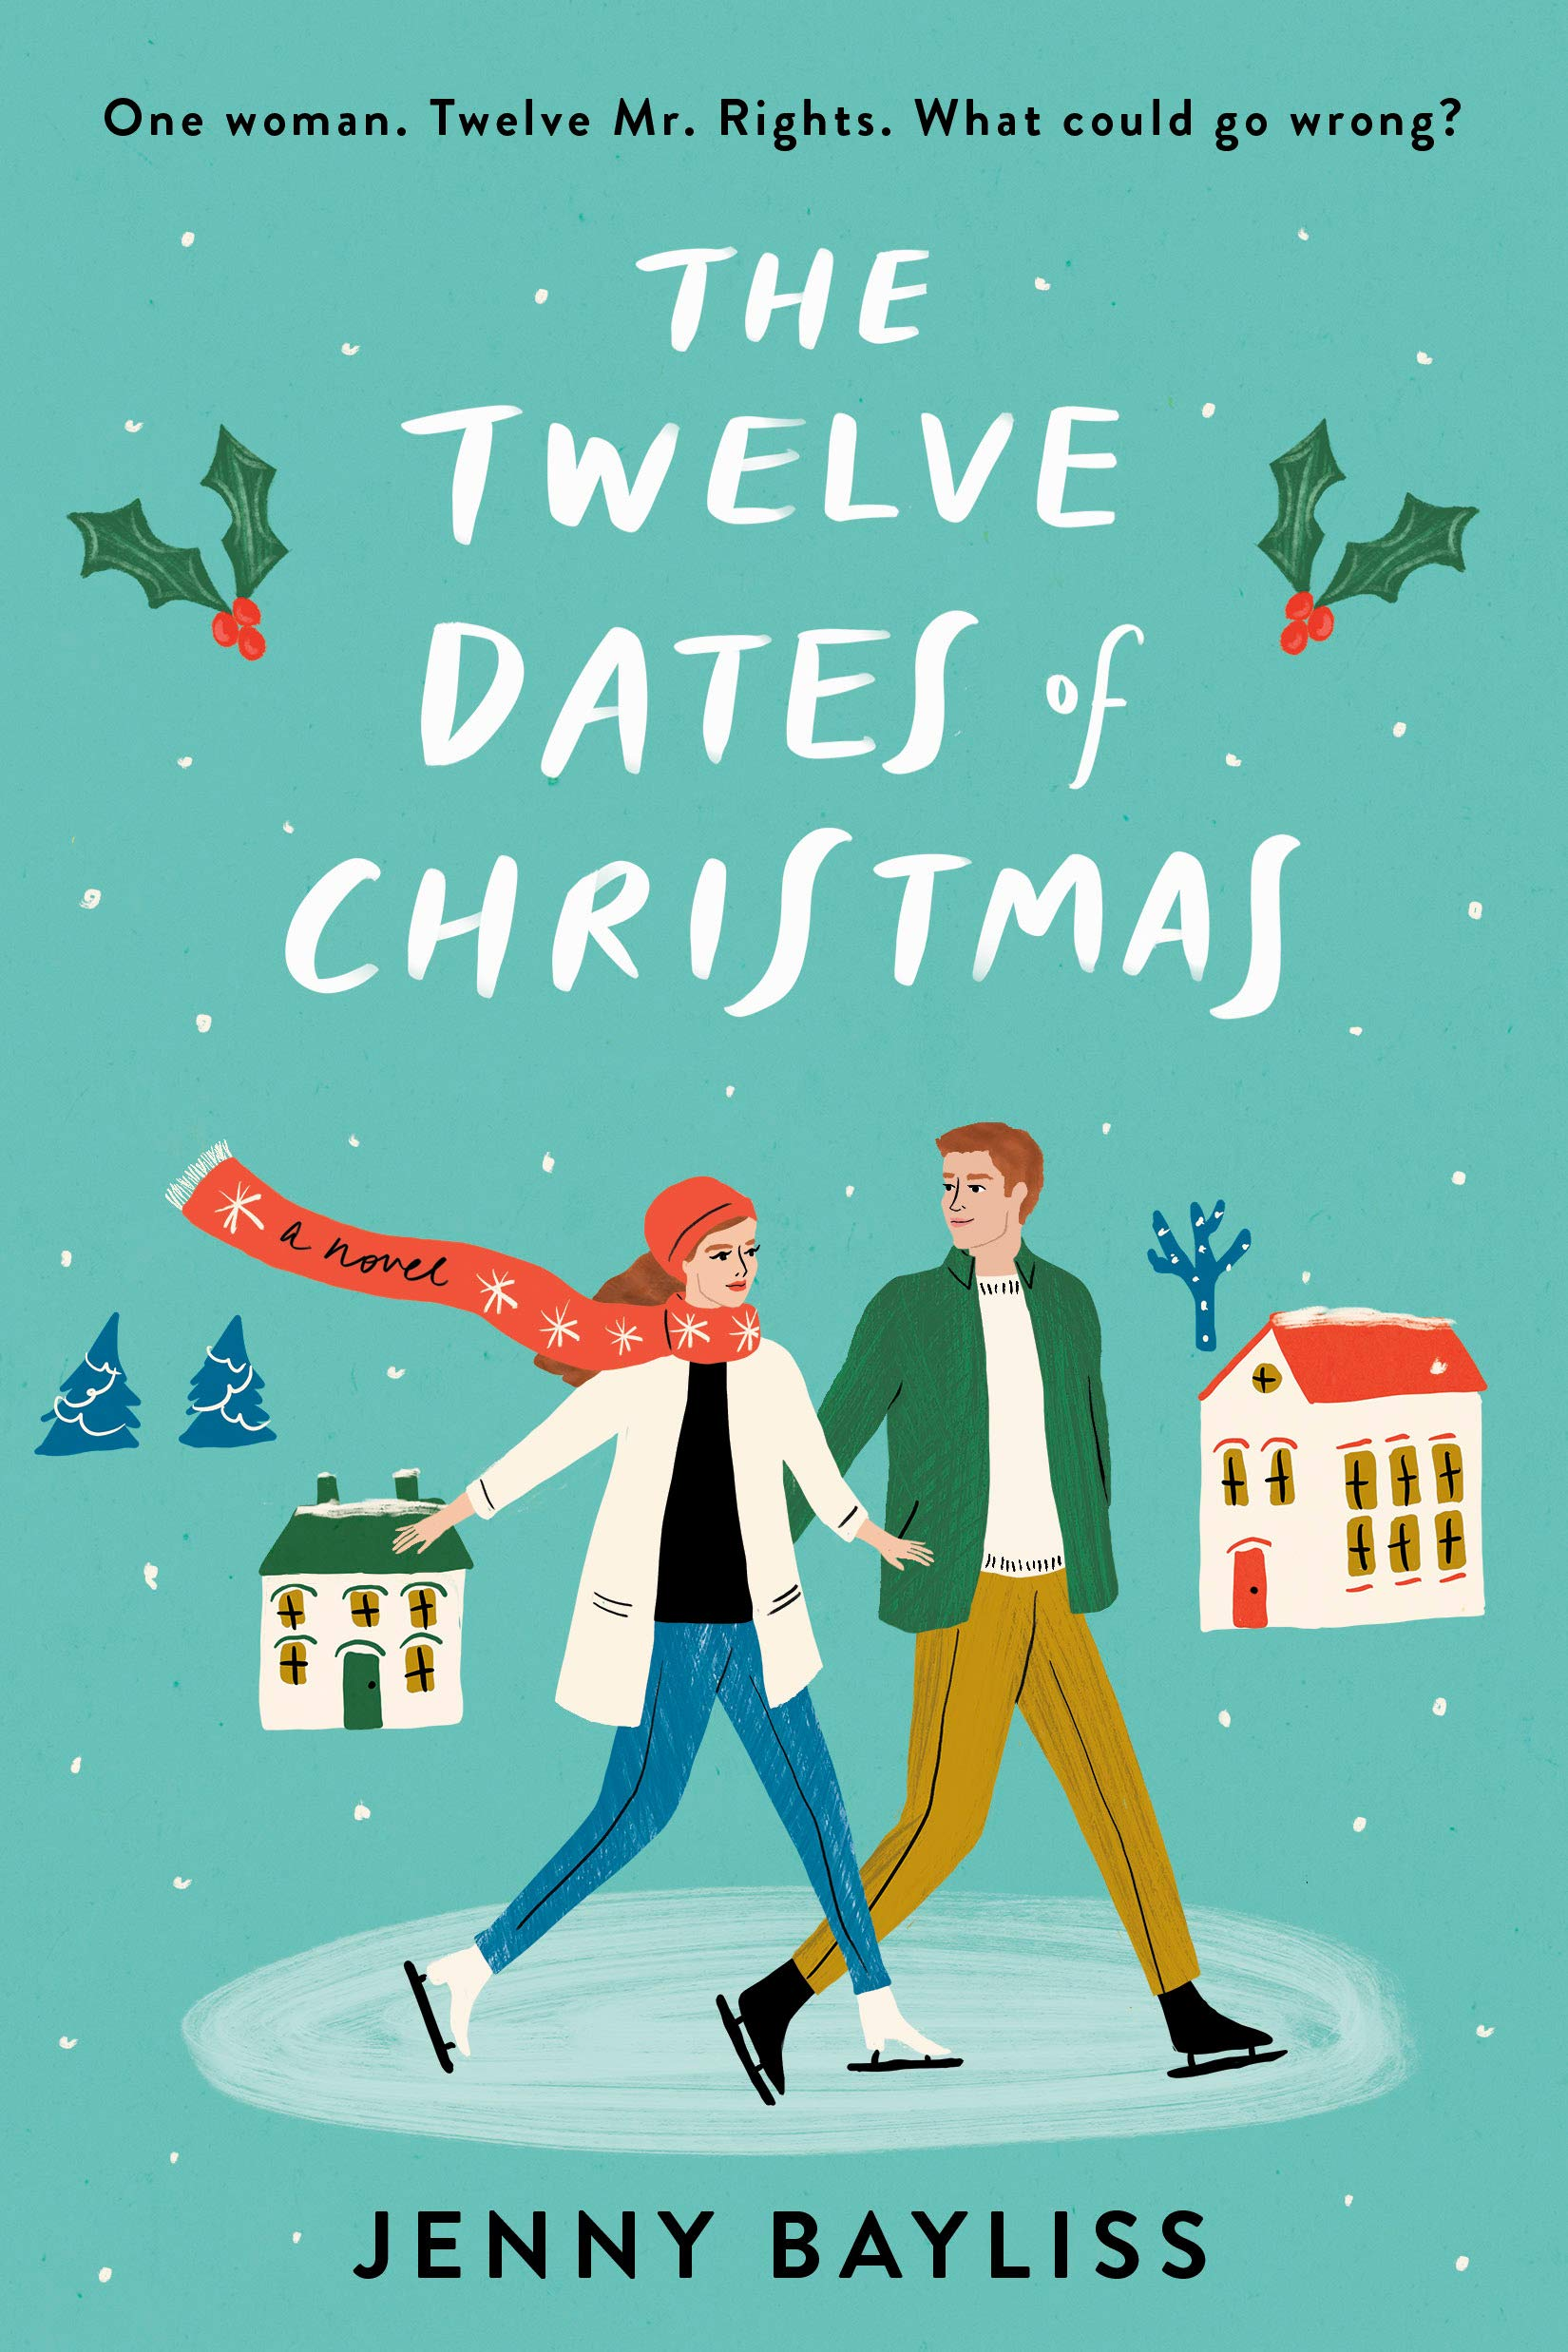 Amazon.com: The Twelve Dates of Christmas (9780593085387): Bayliss, Jenny:  Books